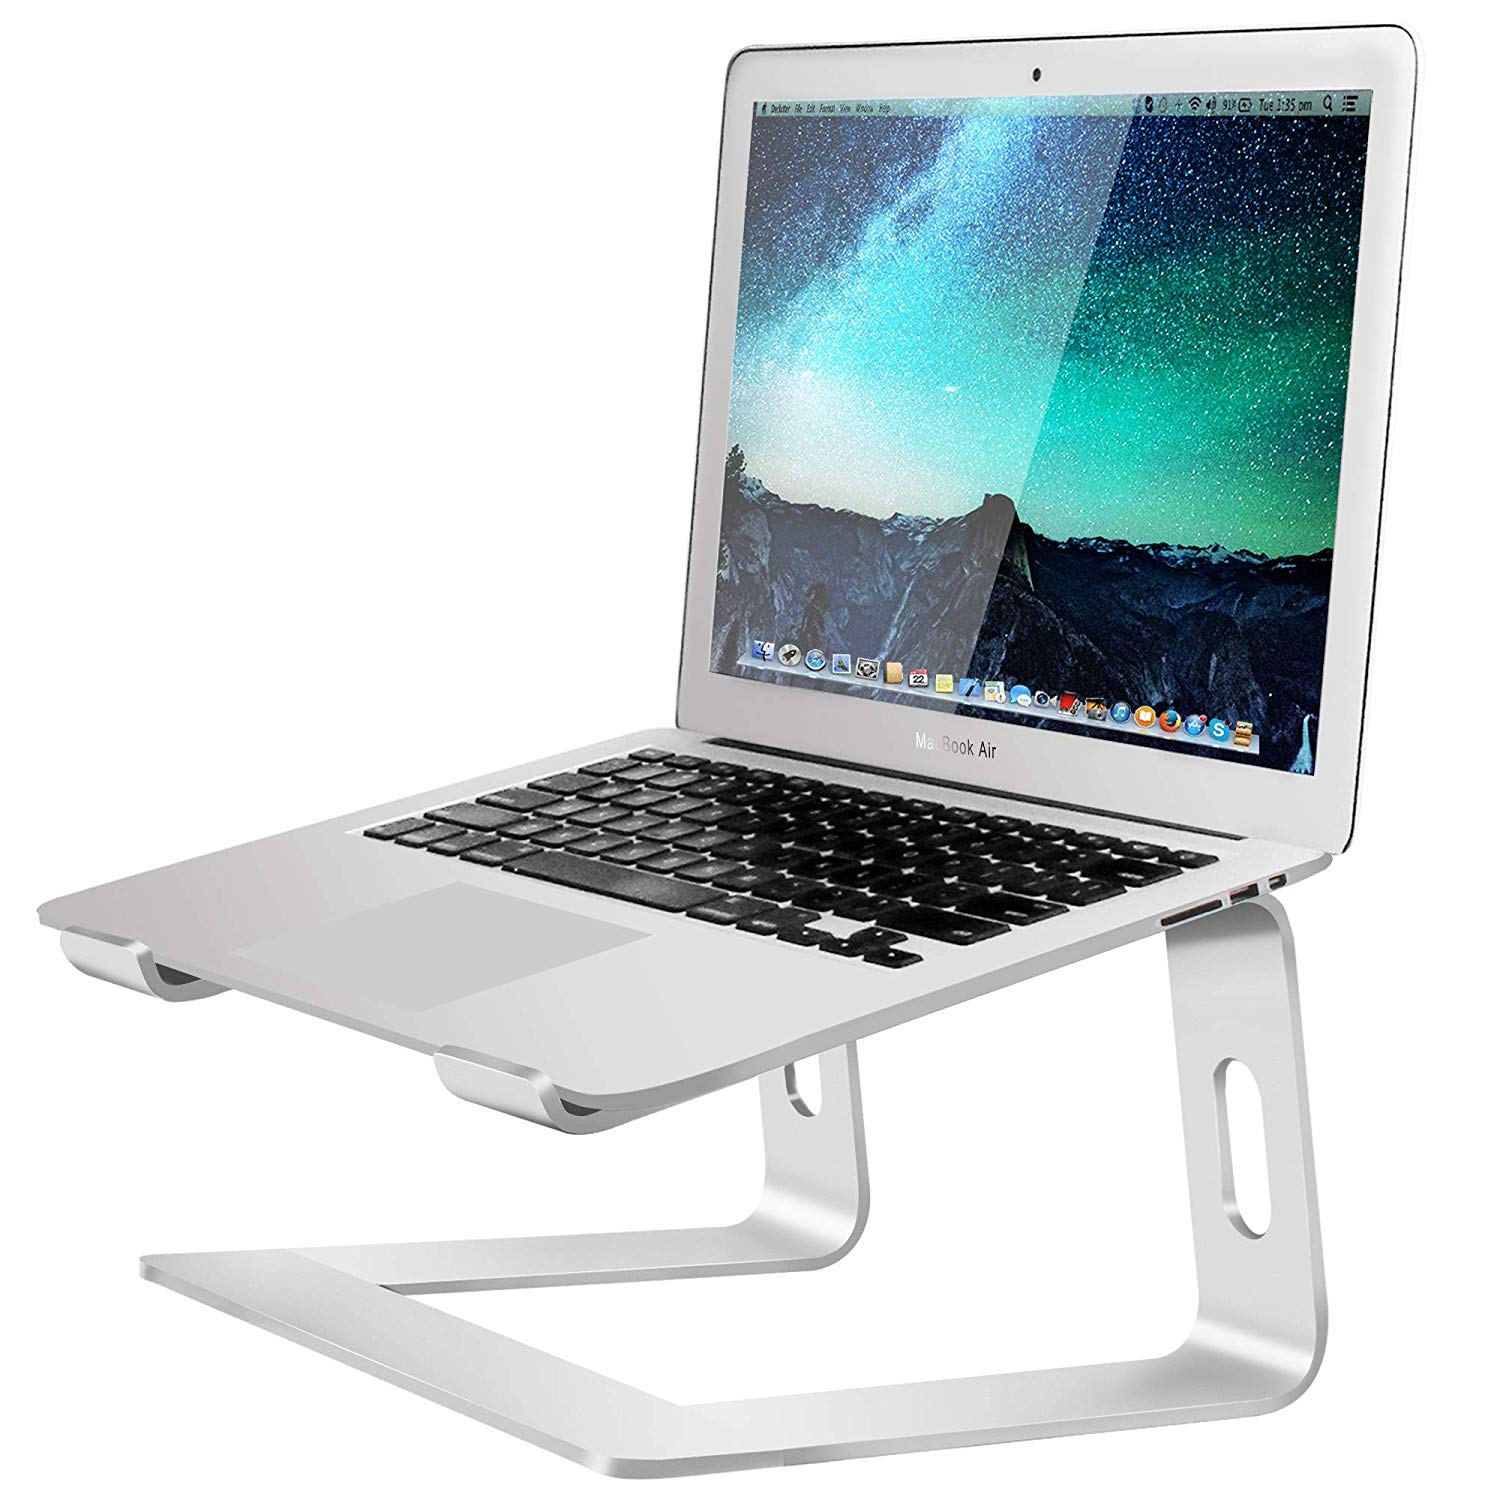 Soundance Aluminum Laptop Stand for Desk Compatible with Mac MacBook Pro Air Apple Notebook, Portable Holder Ergonomic Elevator Metal Riser for 10 to 15.6 inch PC Desktop Computer, LS1 Silver